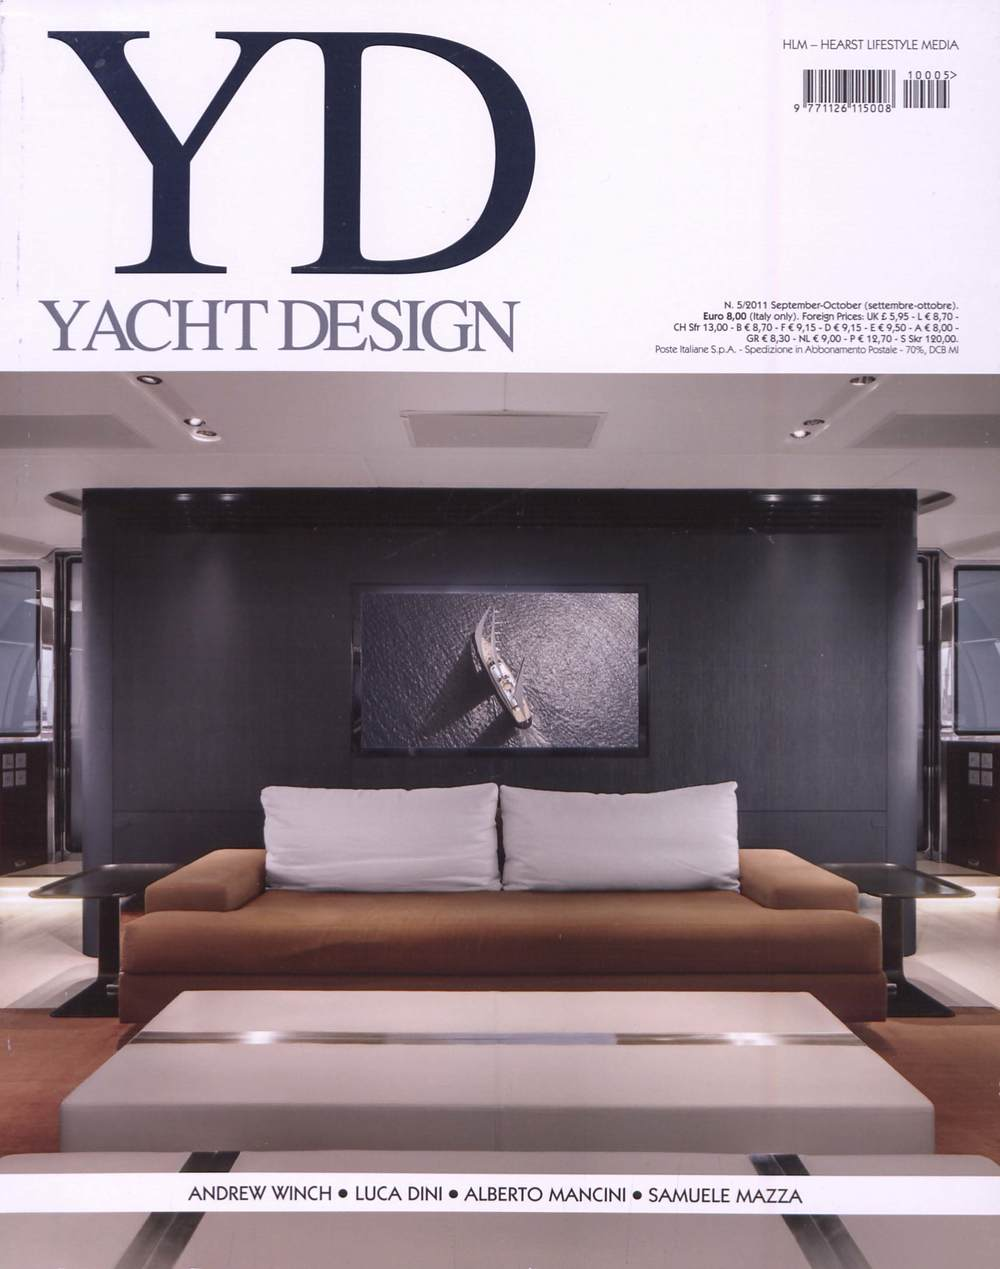 Yacht Design September/October 2011